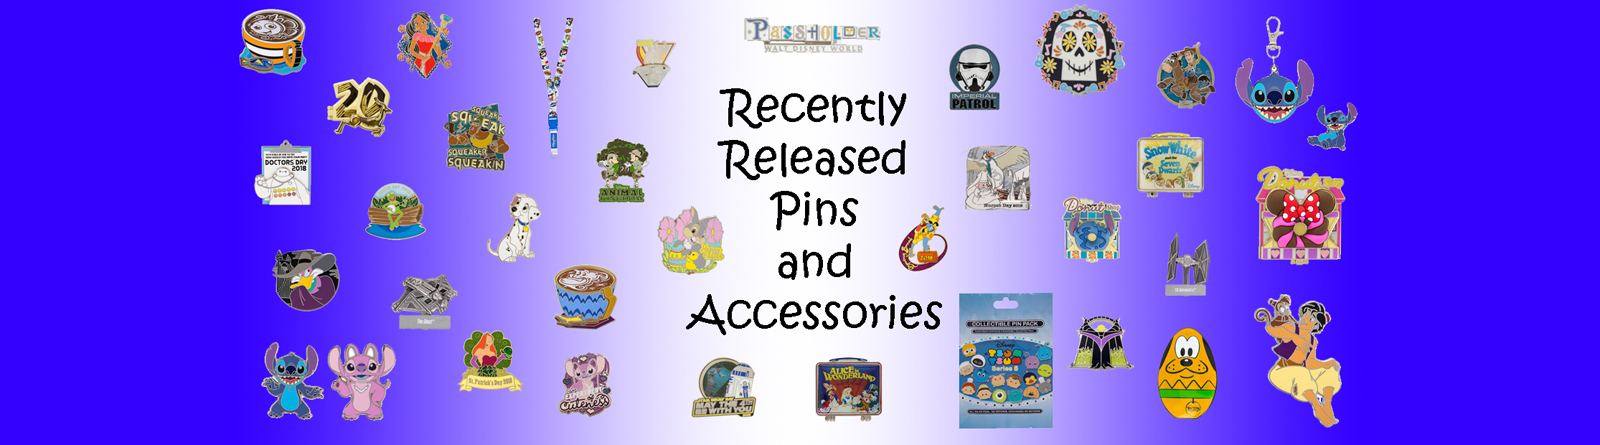 Disney Limited Edition Toys, Collectibles & Souvenirs   Your